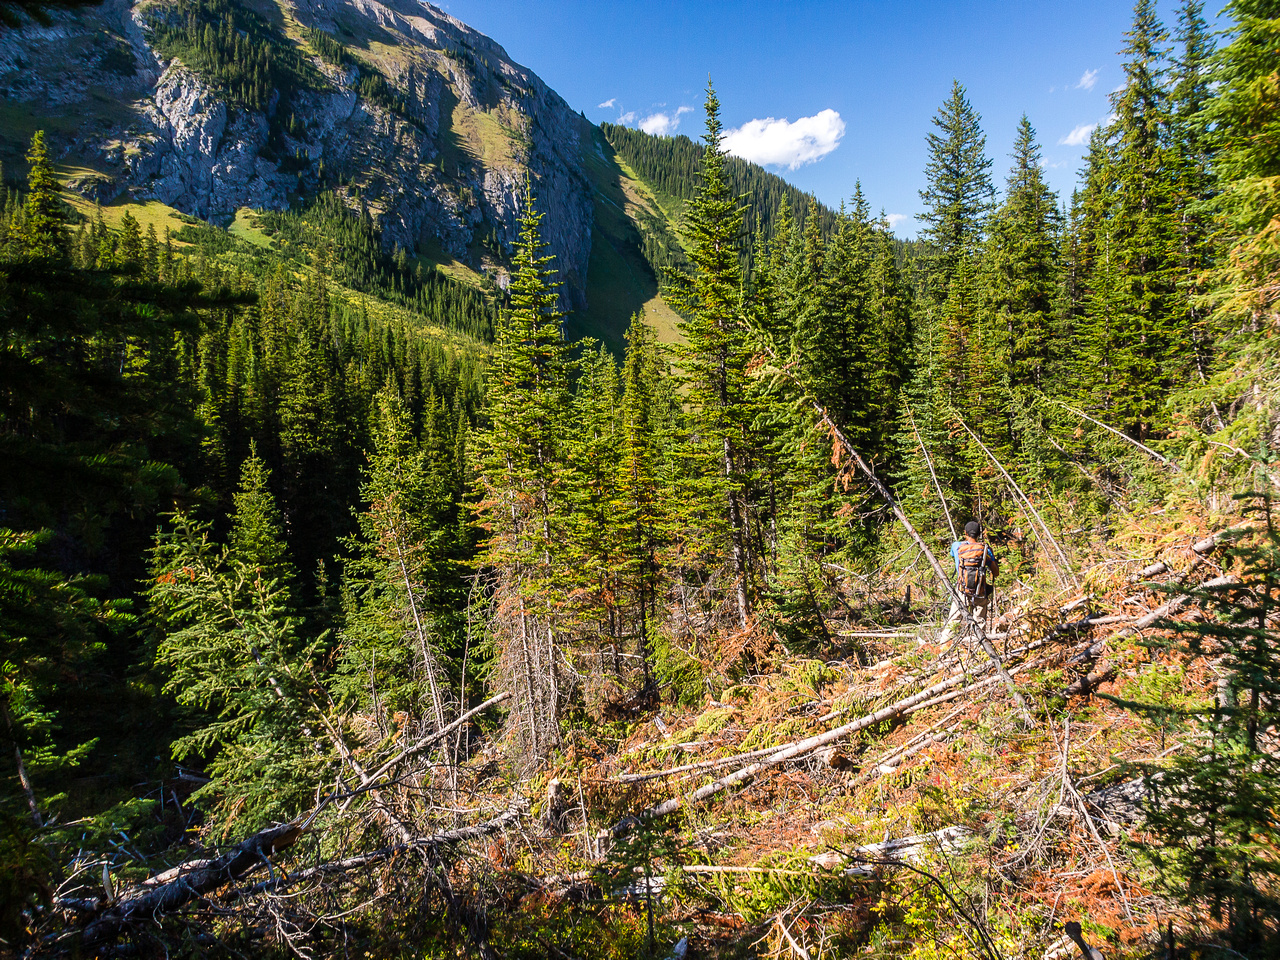 Dealing with avalanche debris on the return trail